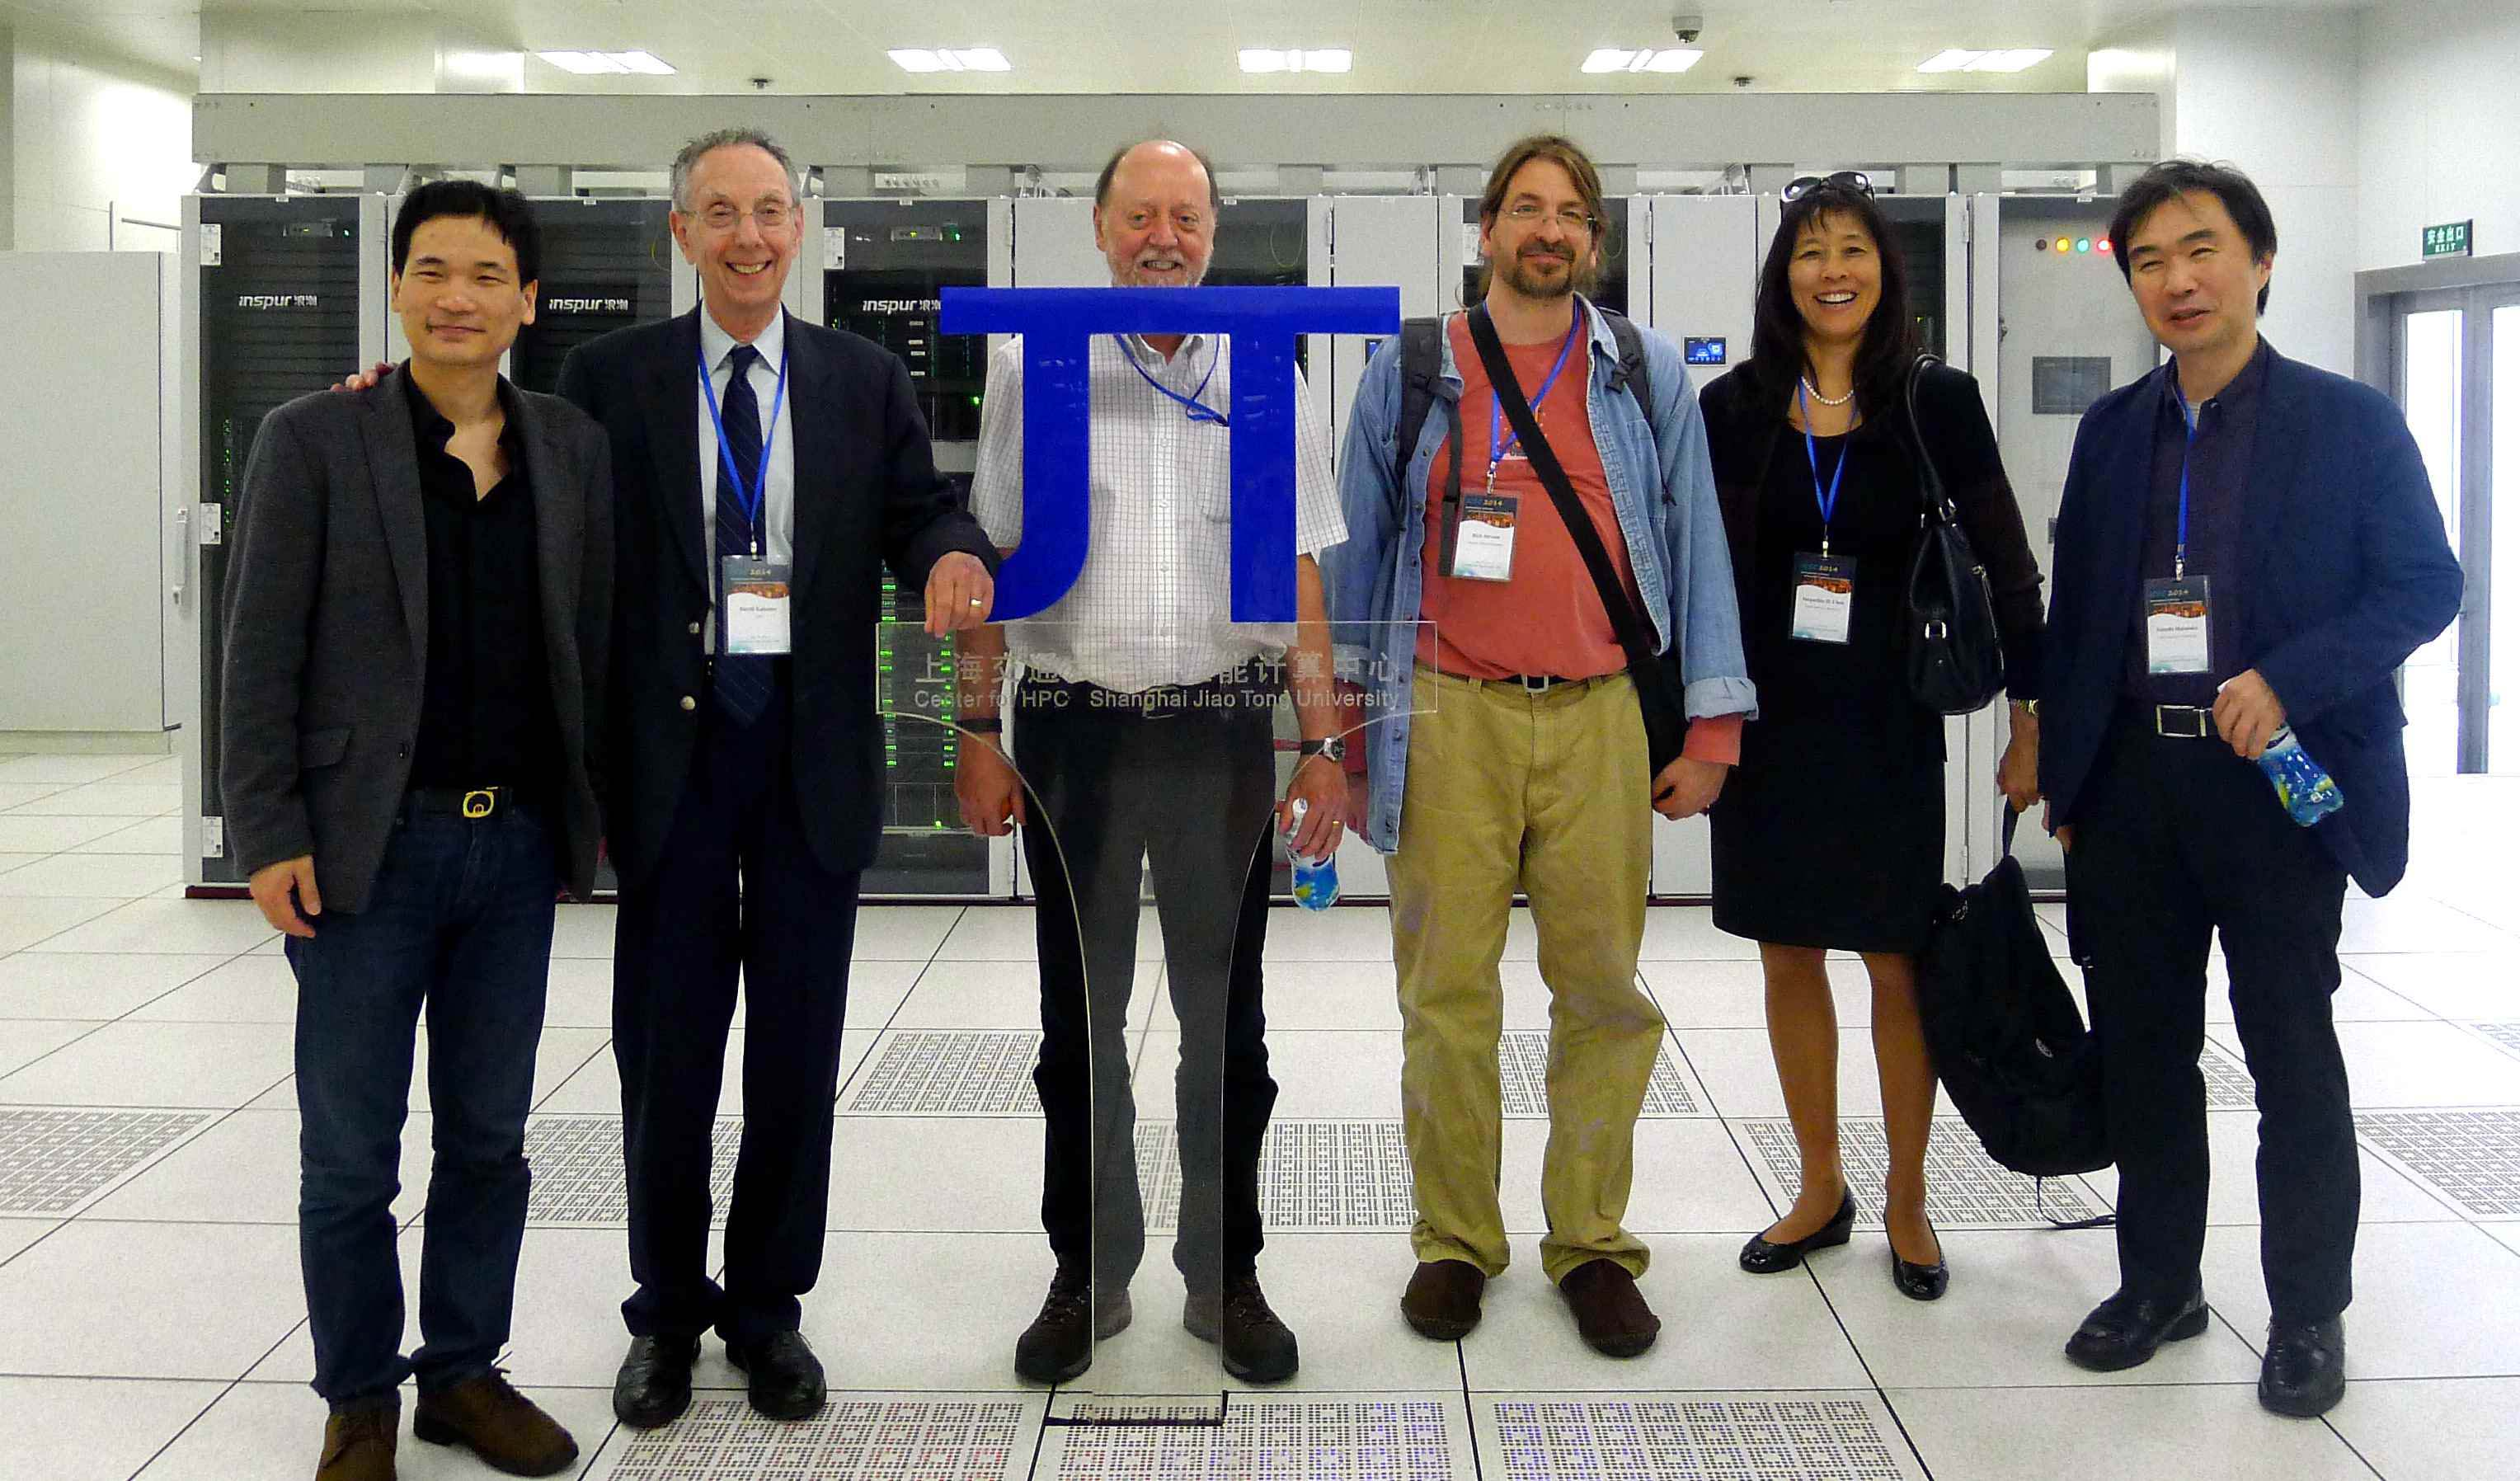 Dr. David Kahaner (the second from the left), President of ATIP, in front of the ∏ system at the HPC Center of Shanghai Jiao Tong University, together with Prof. Xinhua LIN (Vice Director, Center for HPC, Shanghai Jiao Tong University), and other attendees of ICSC 2014 conference